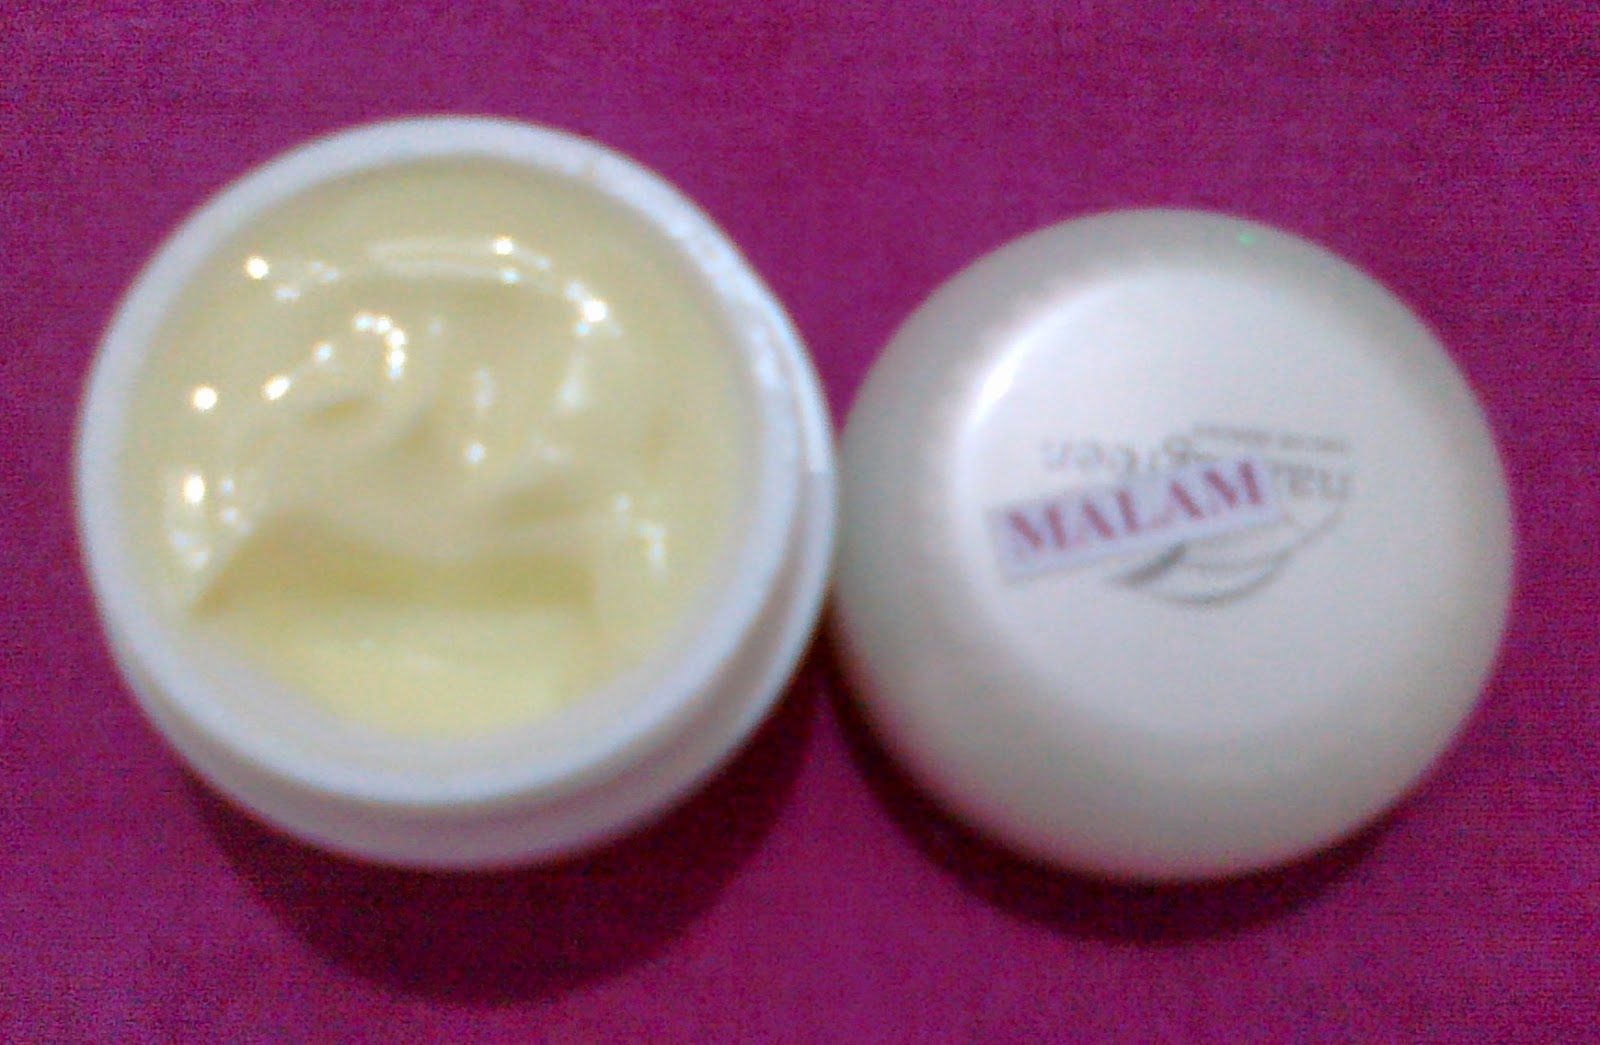 Review SkinCare NaavaGreen Review SkinCare NaavaGreen